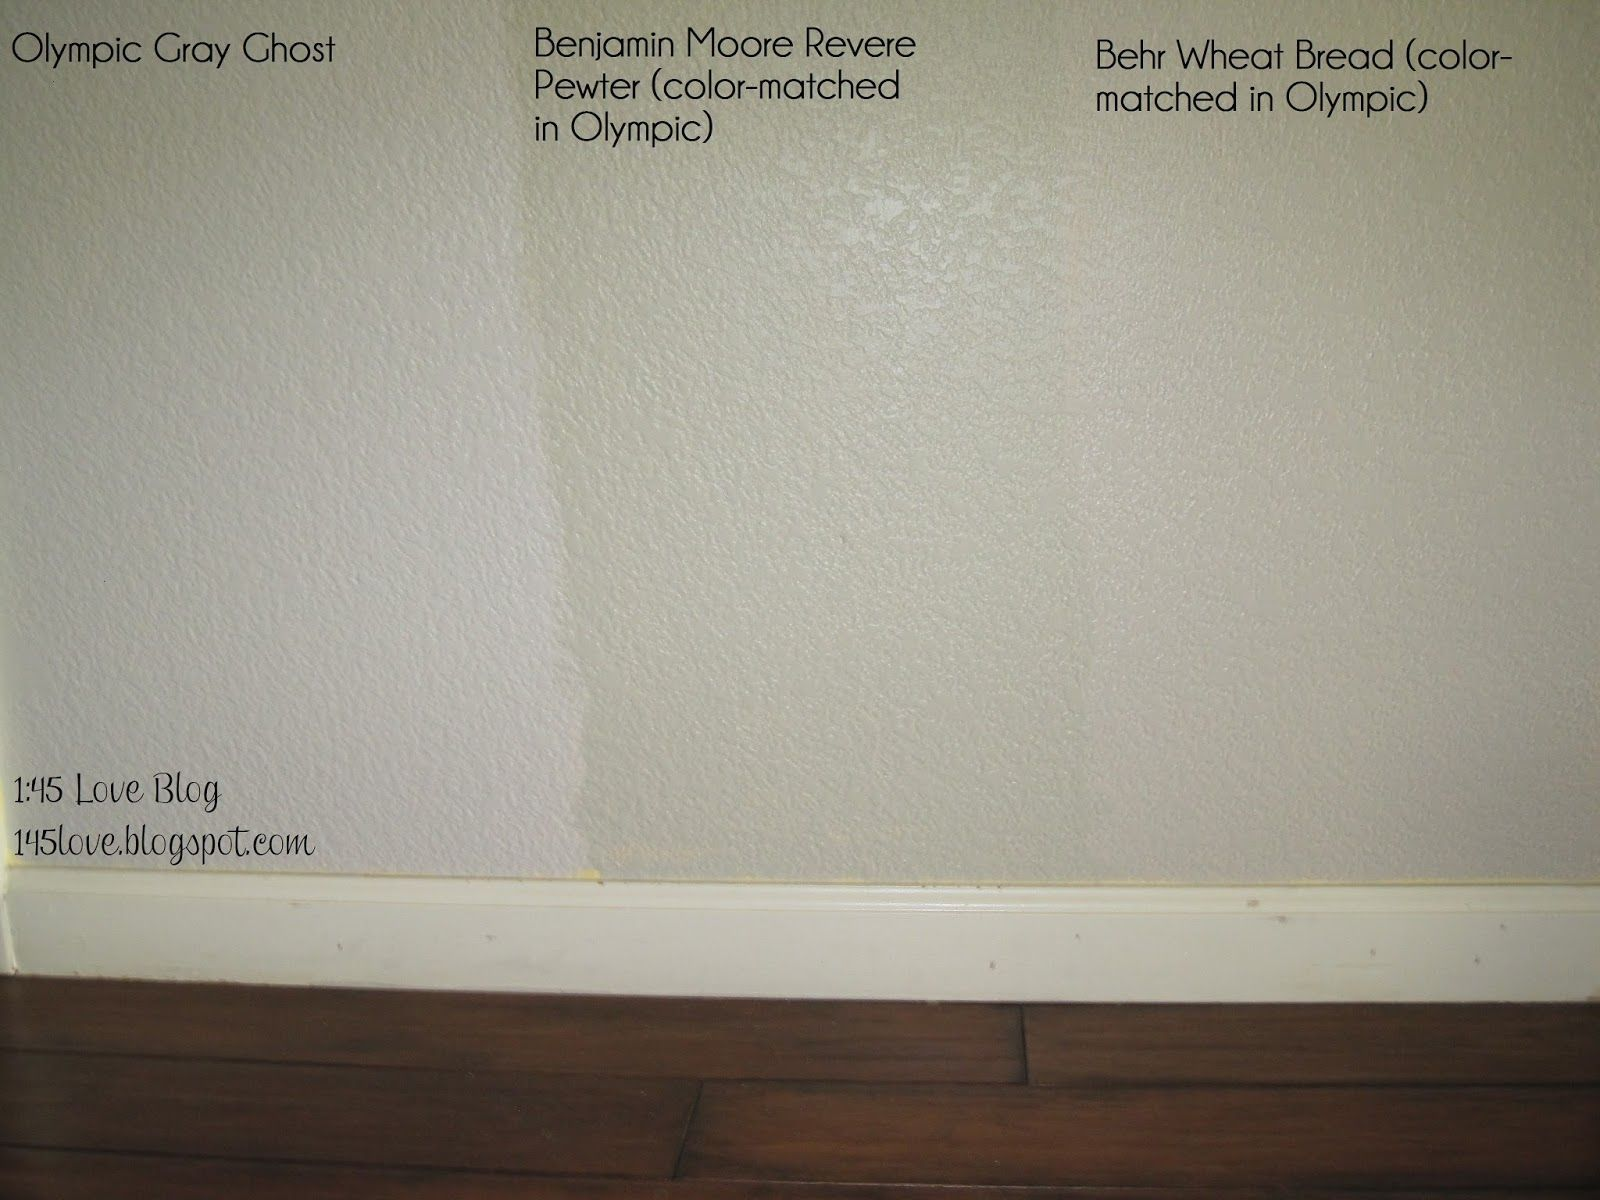 Greige Paint Wall Swatches Olympic Gray Ghost Benjamin Moore Revere Pewter Behr Wheat Bread Olympic Paint Colors Gray